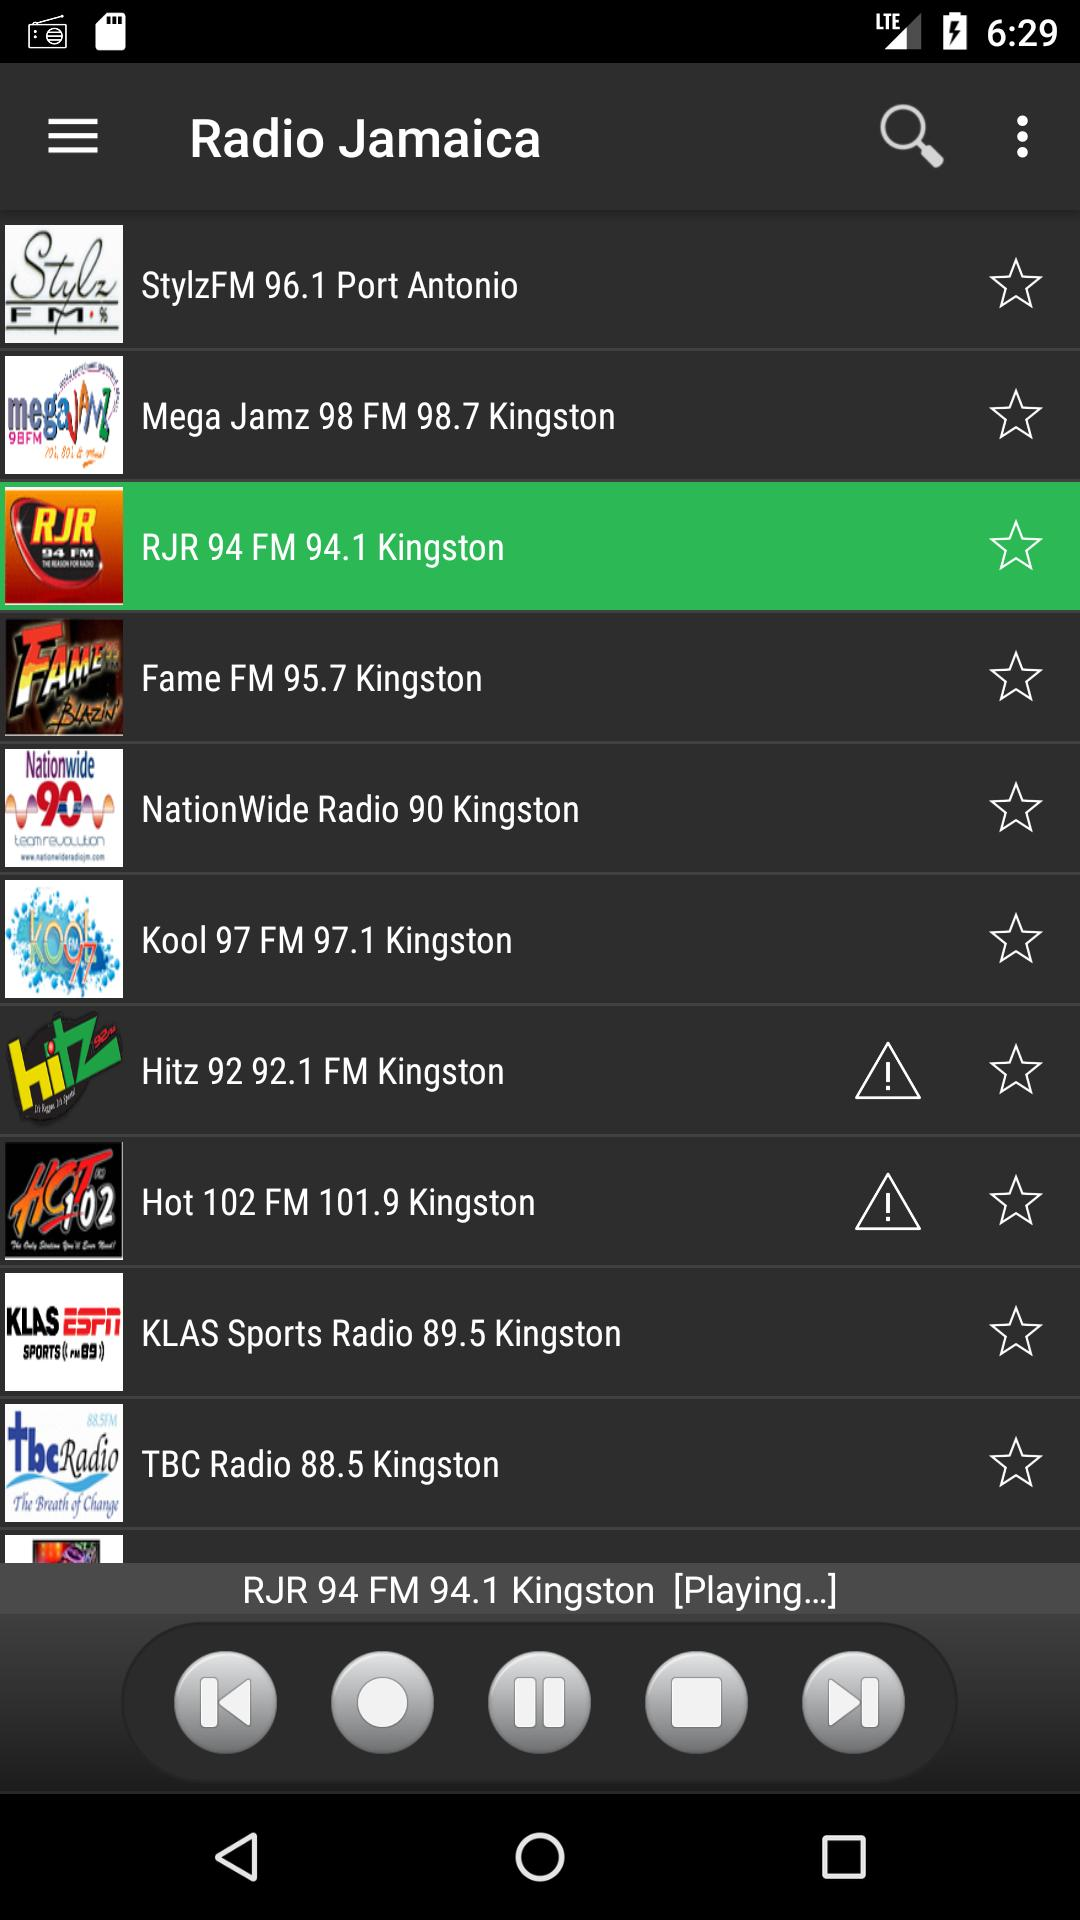 RADIO JAMAICA for Android - APK Download